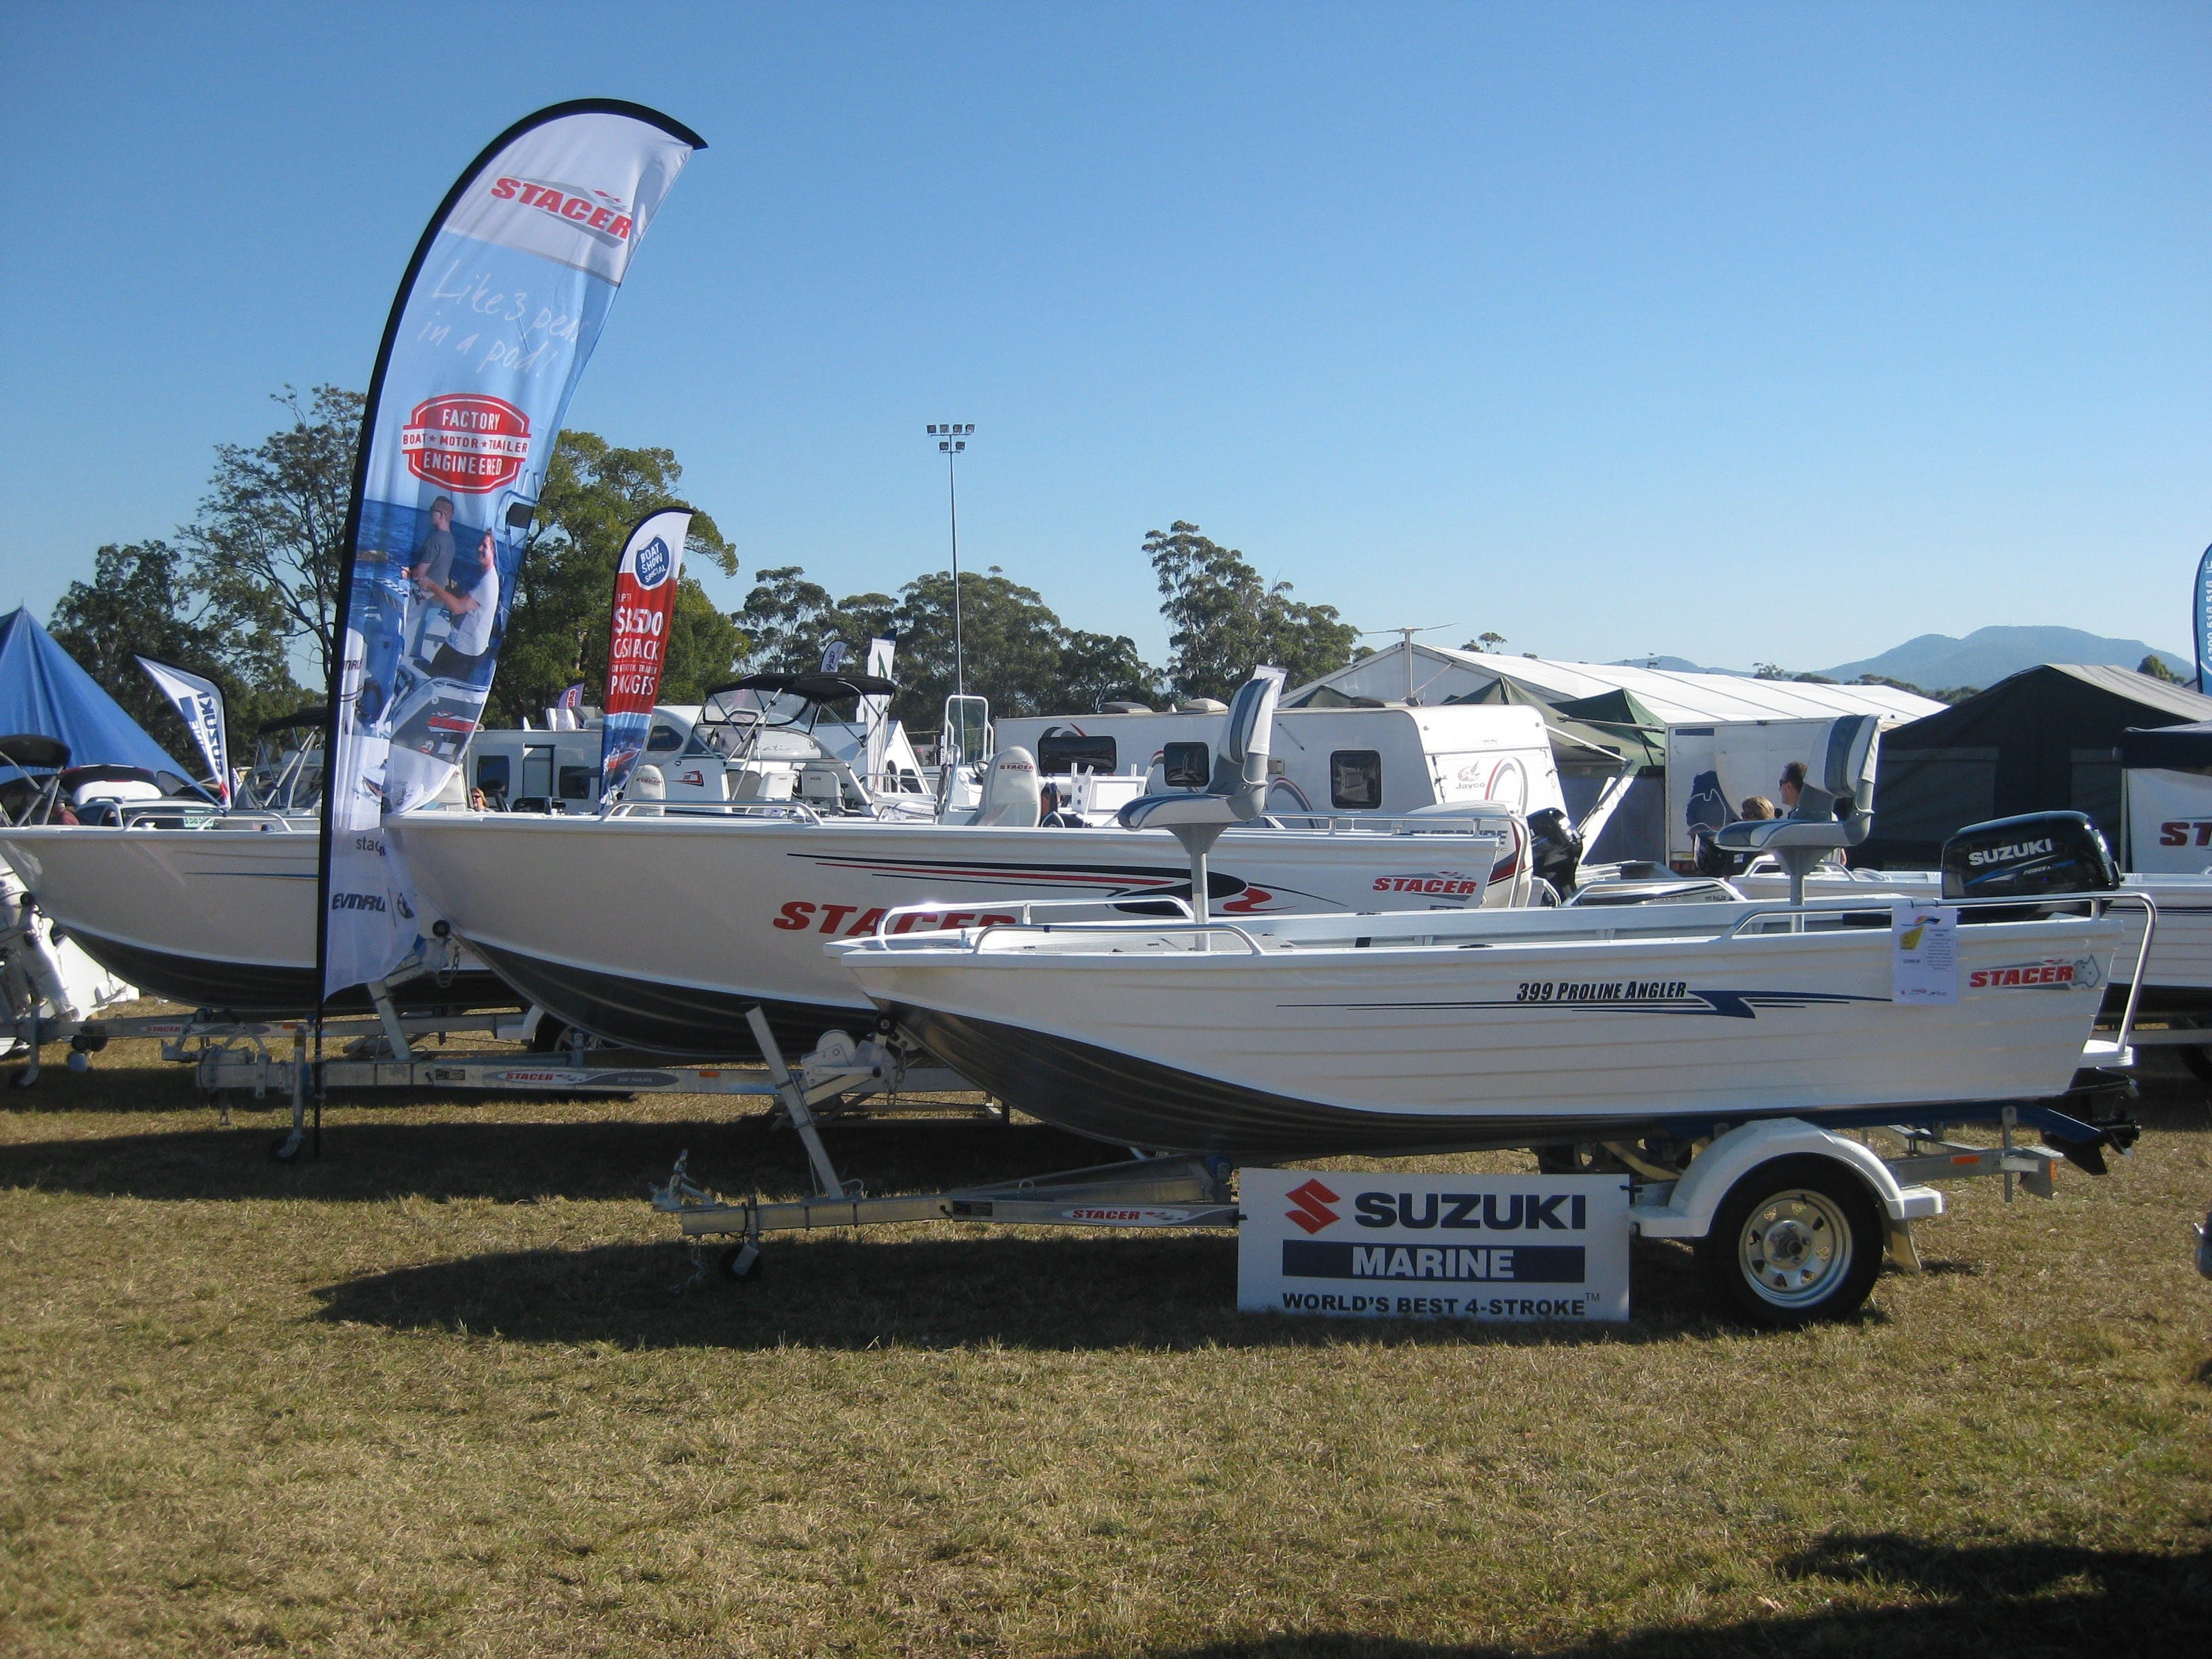 Mid North Coast Caravan Camping 4WD Fish and Boat Show - Townsville Tourism